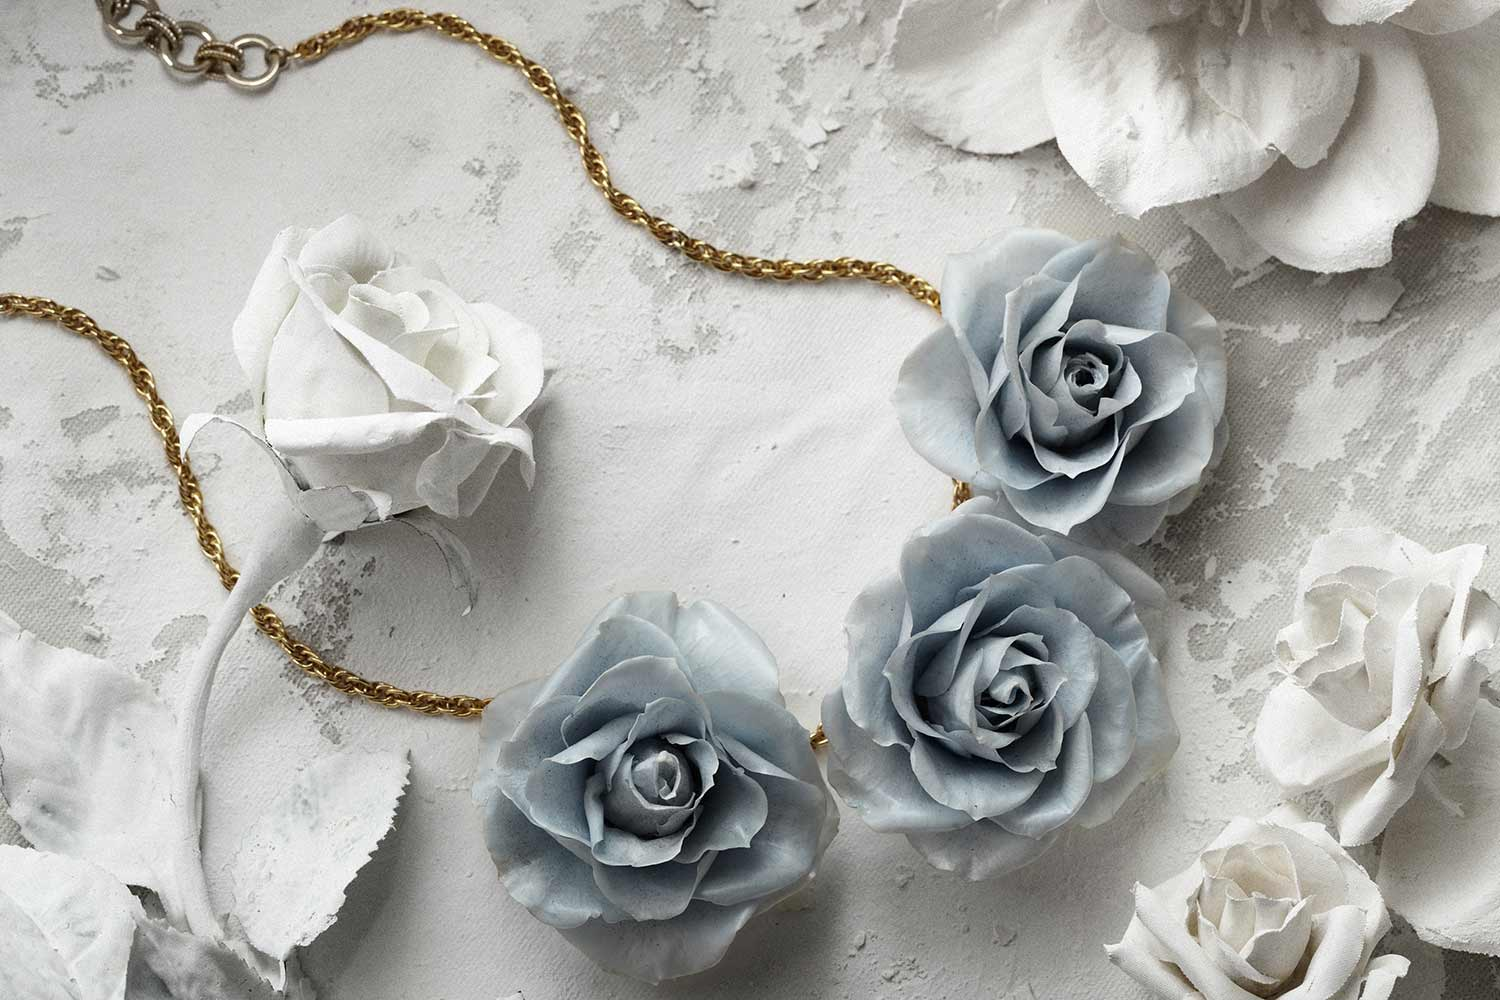 Blue rose necklace jewelry photograph.